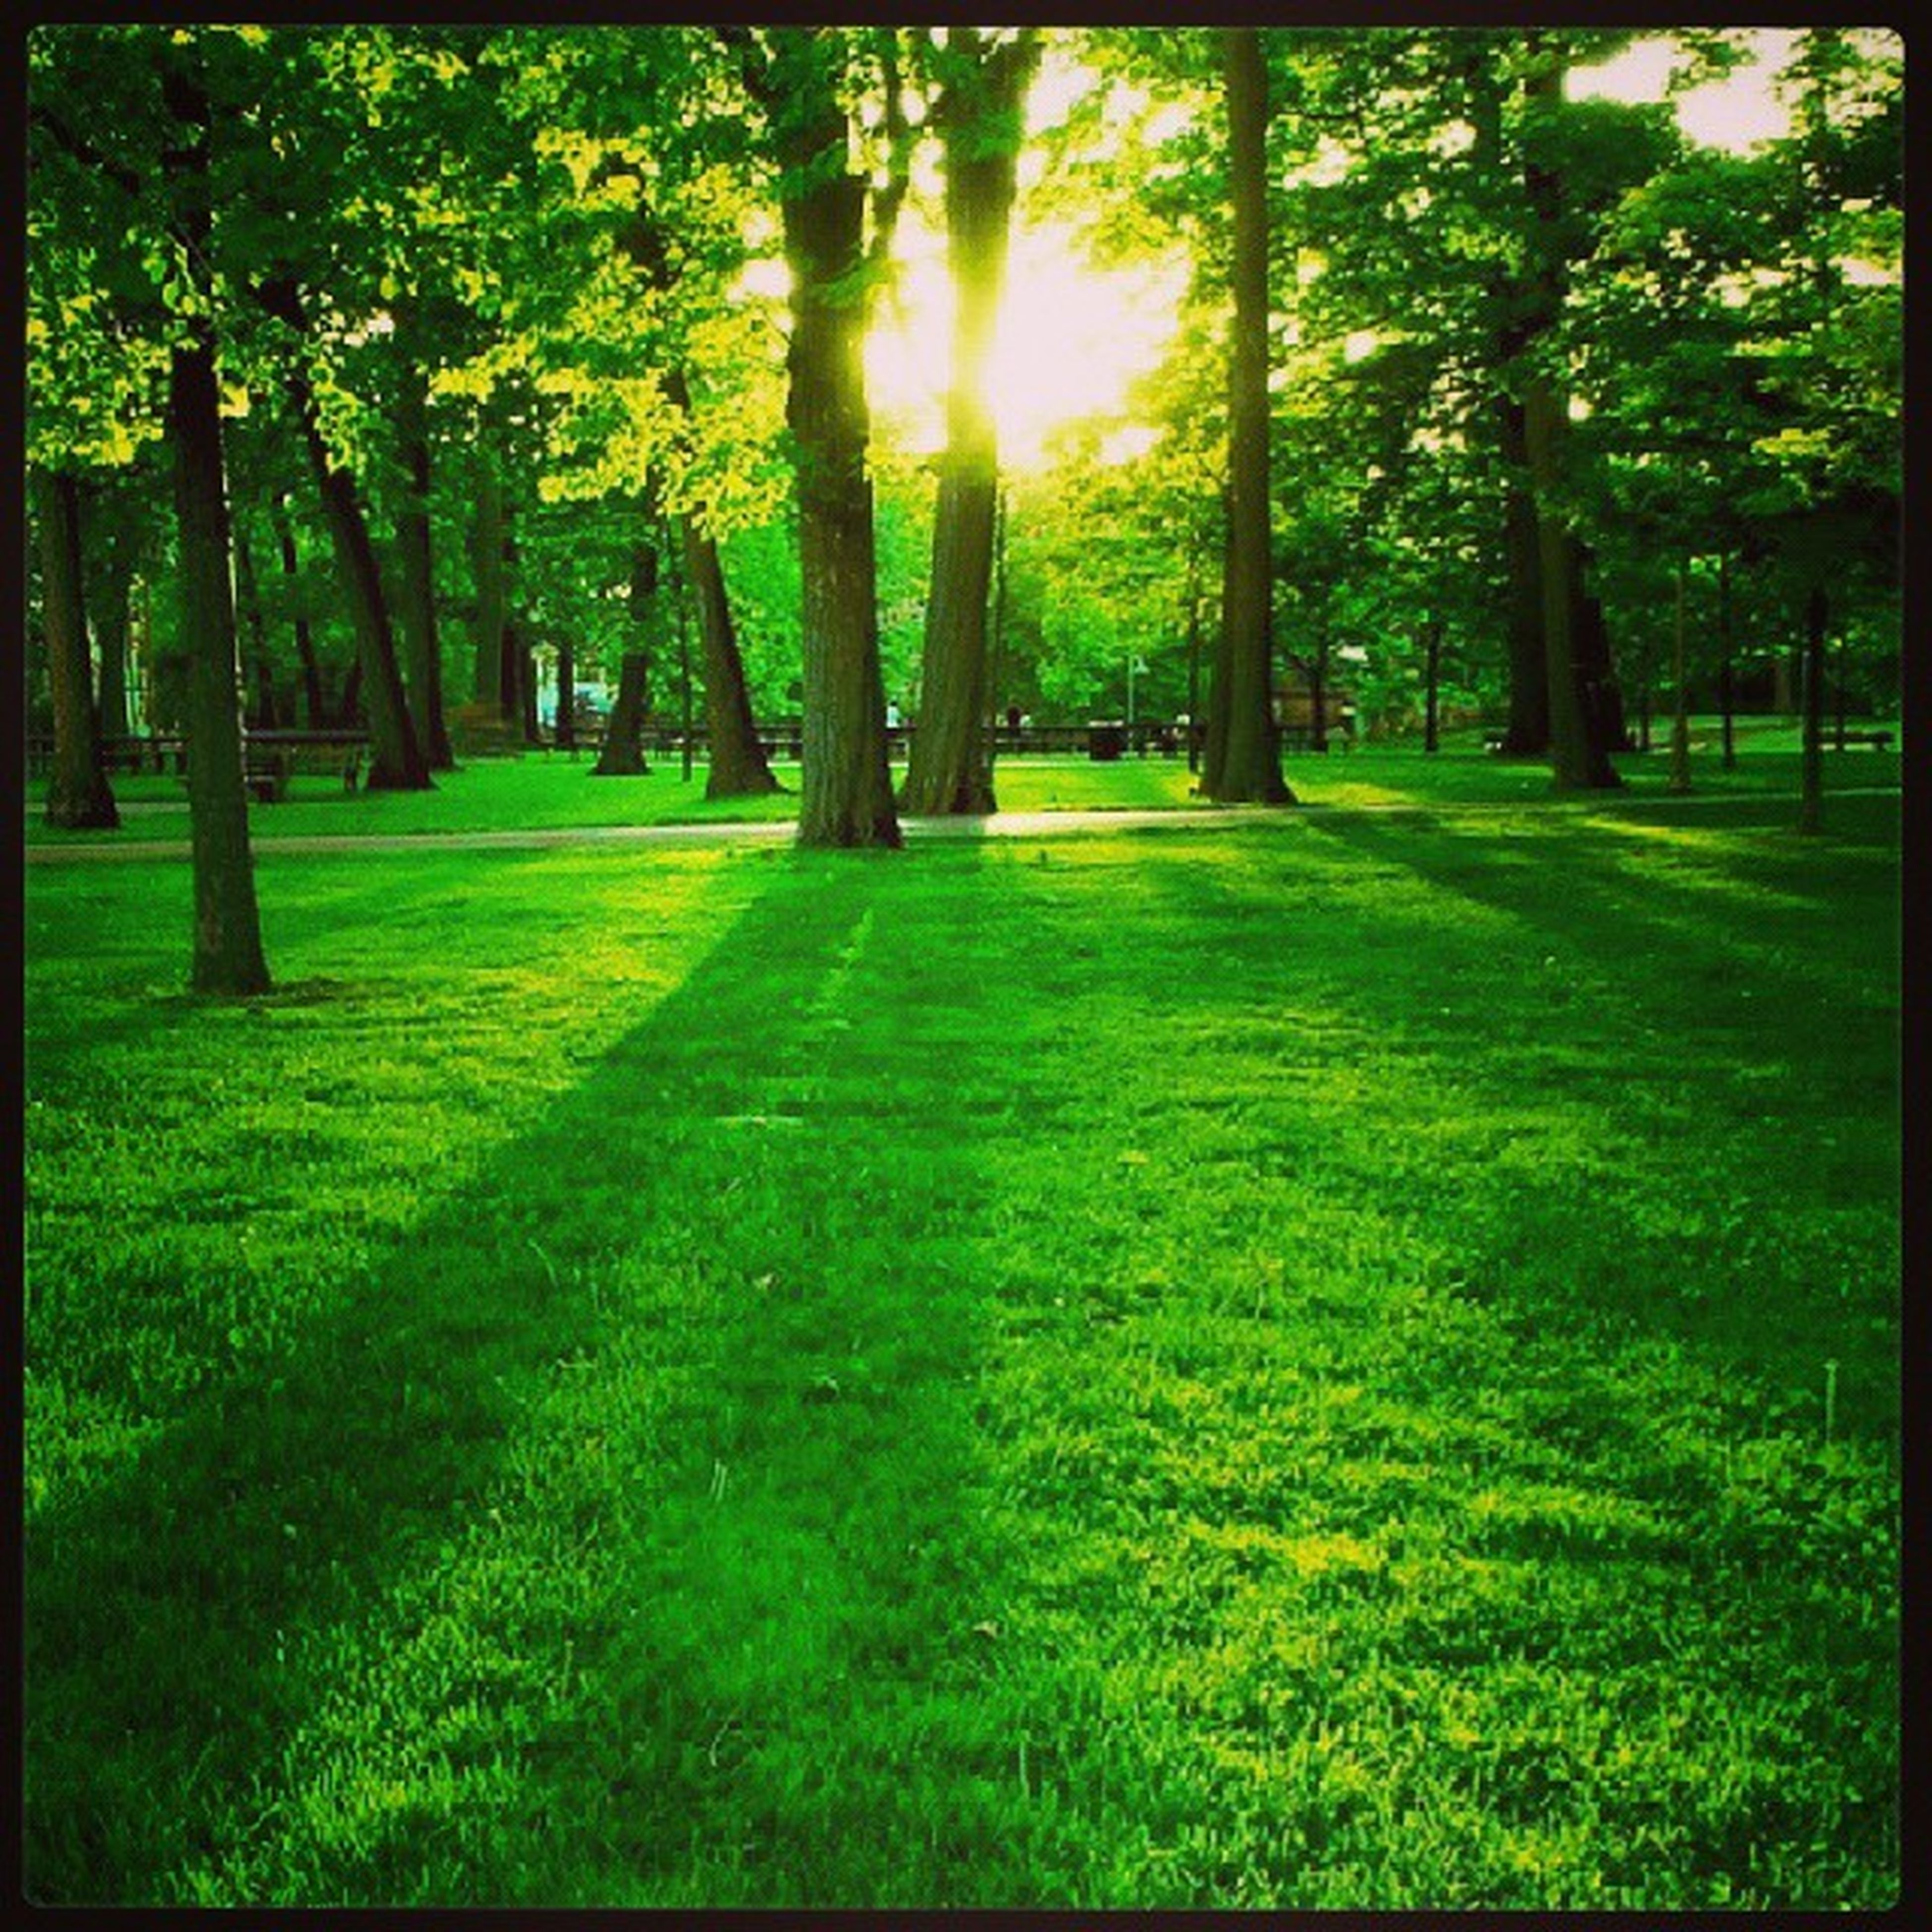 tree, grass, sunlight, green color, growth, tranquility, park - man made space, grassy, nature, tranquil scene, shadow, sunbeam, lawn, park, field, sun, transfer print, beauty in nature, tree trunk, scenics